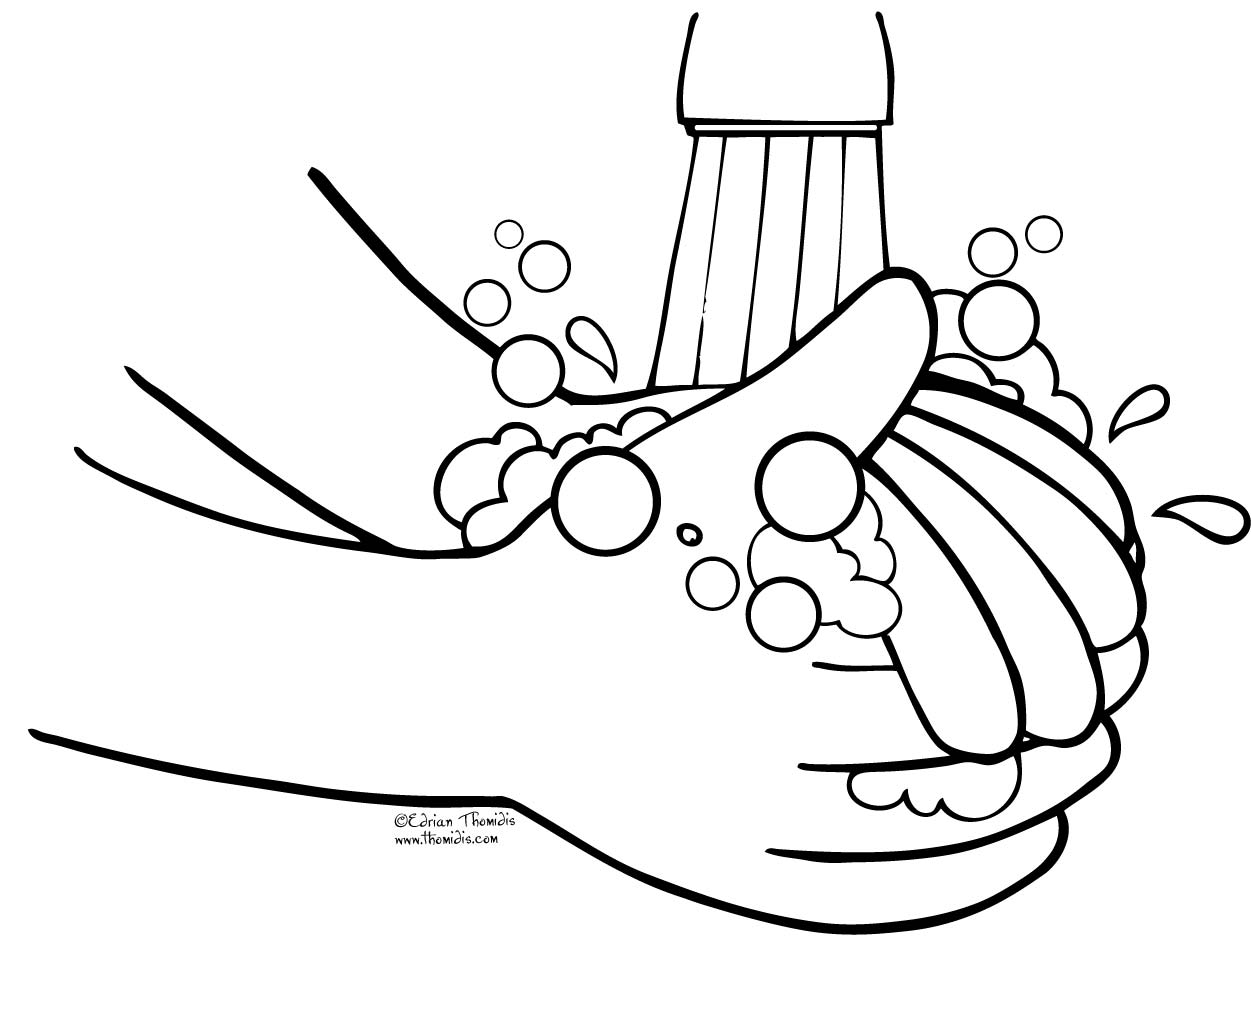 Black hands clip art washing images gallery for Free.